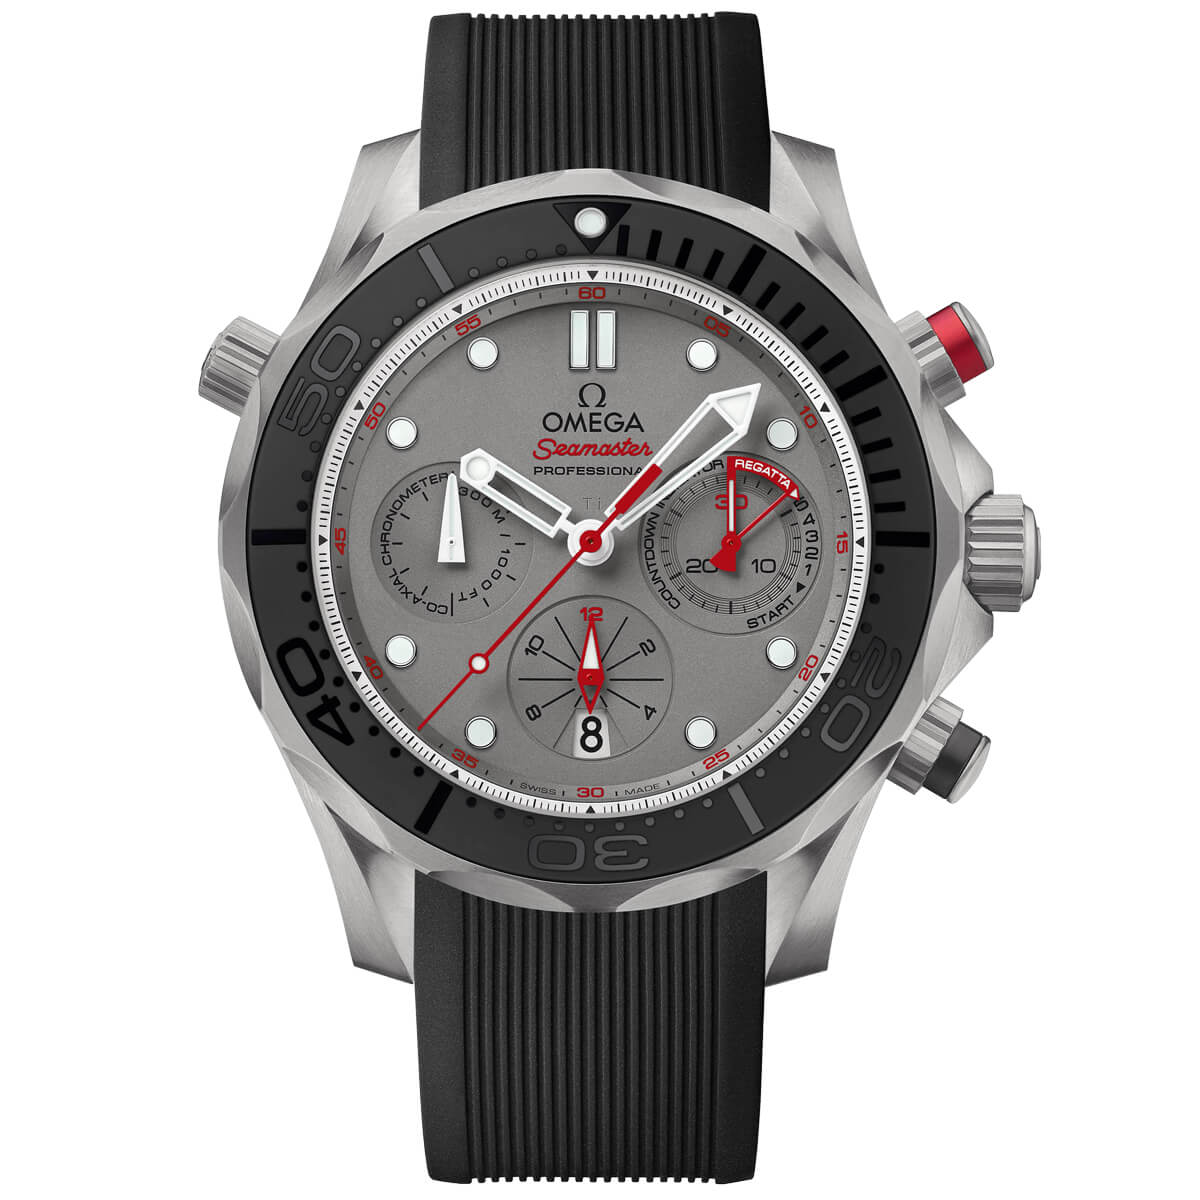 Omega Seamaster Diver 300M Co-Axial Chronograph ETNZ (Emirates Team New Zealand)